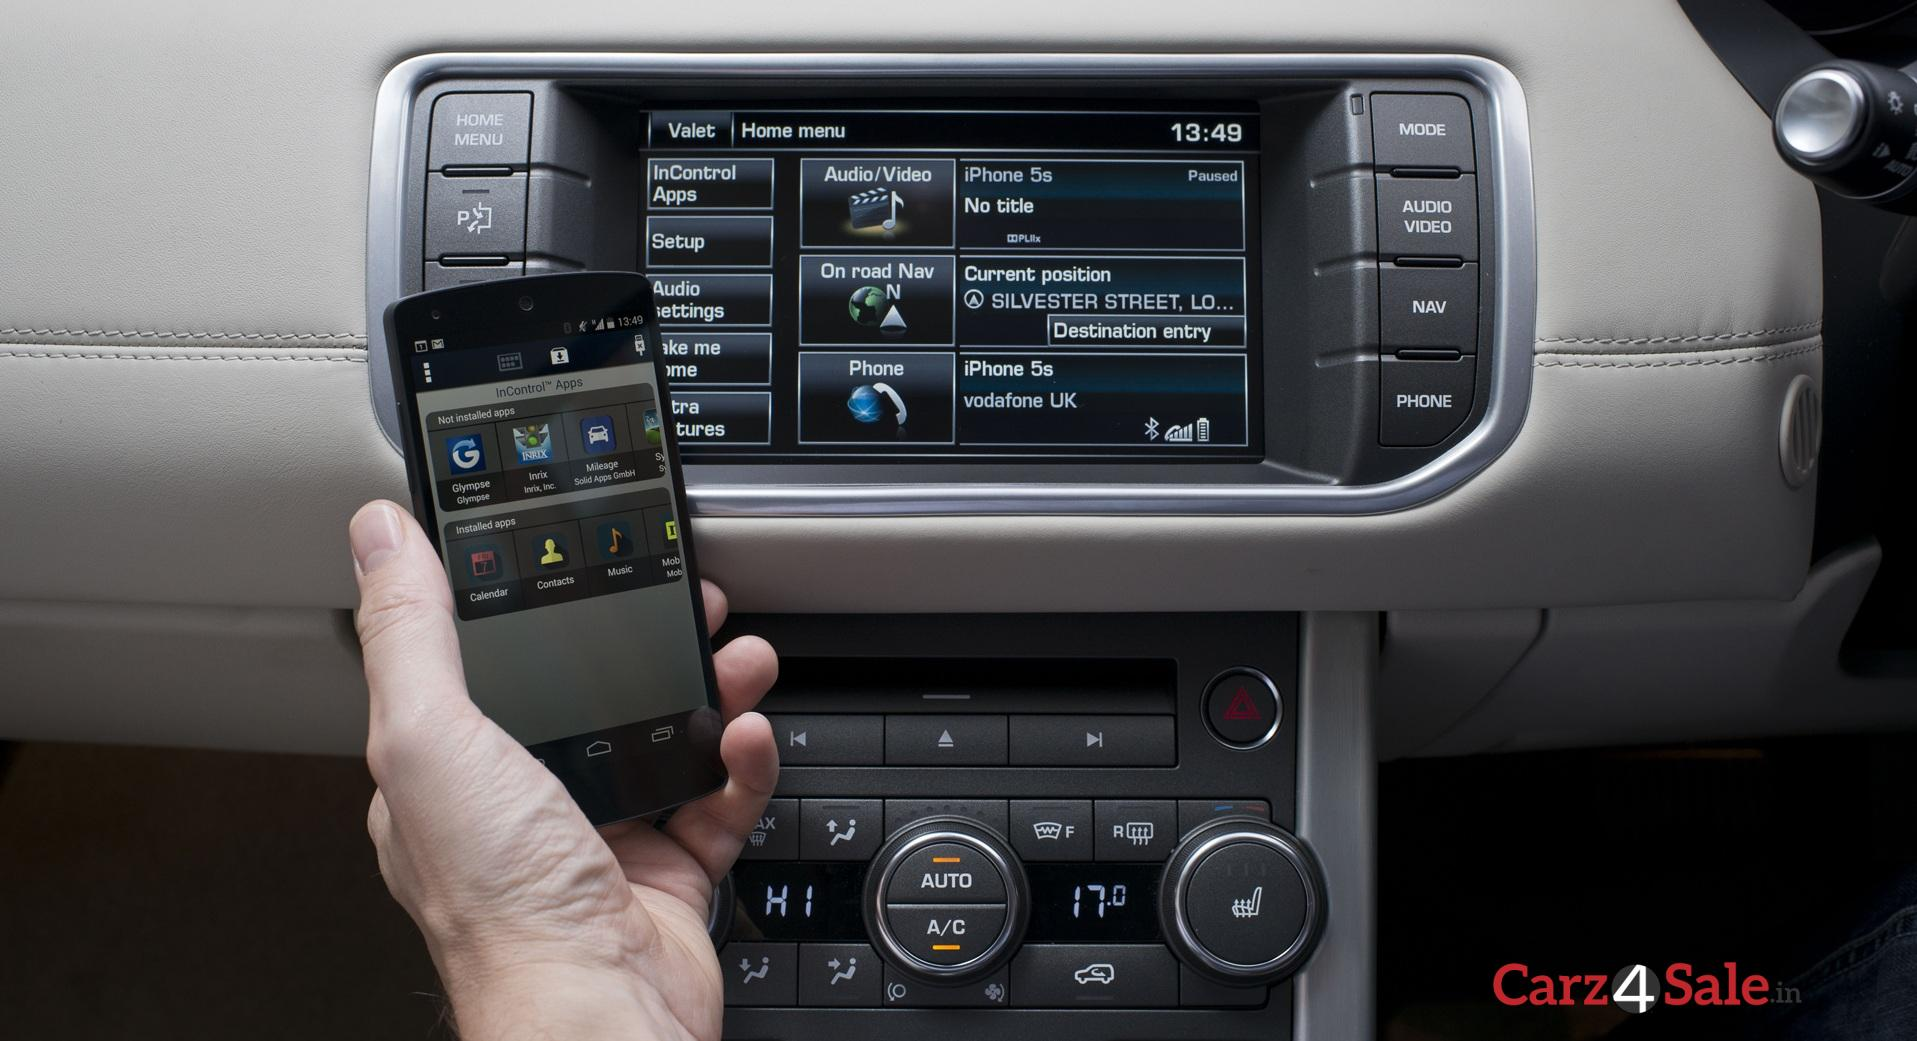 Range Rover Evoque Autobiography In Control Apps Connectivity